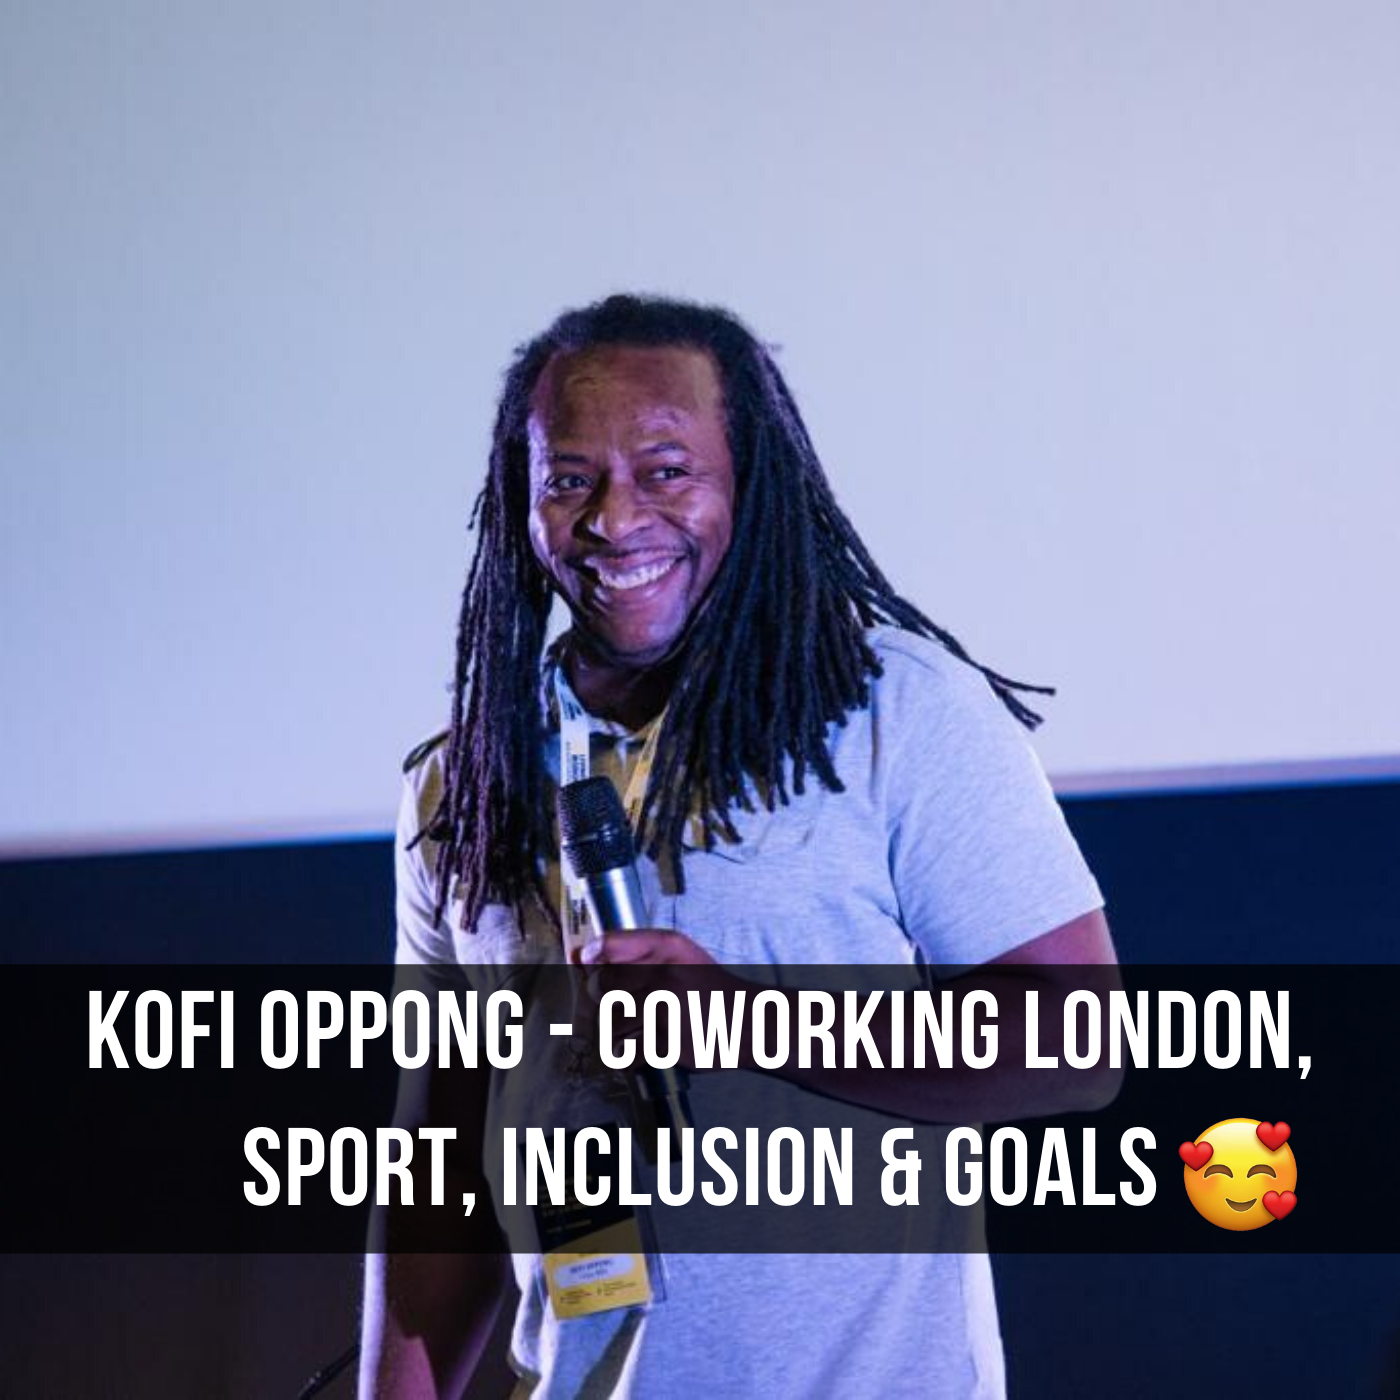 Copy of Kofi Oppong – Coworking London, Sport, Inclusion & Goals